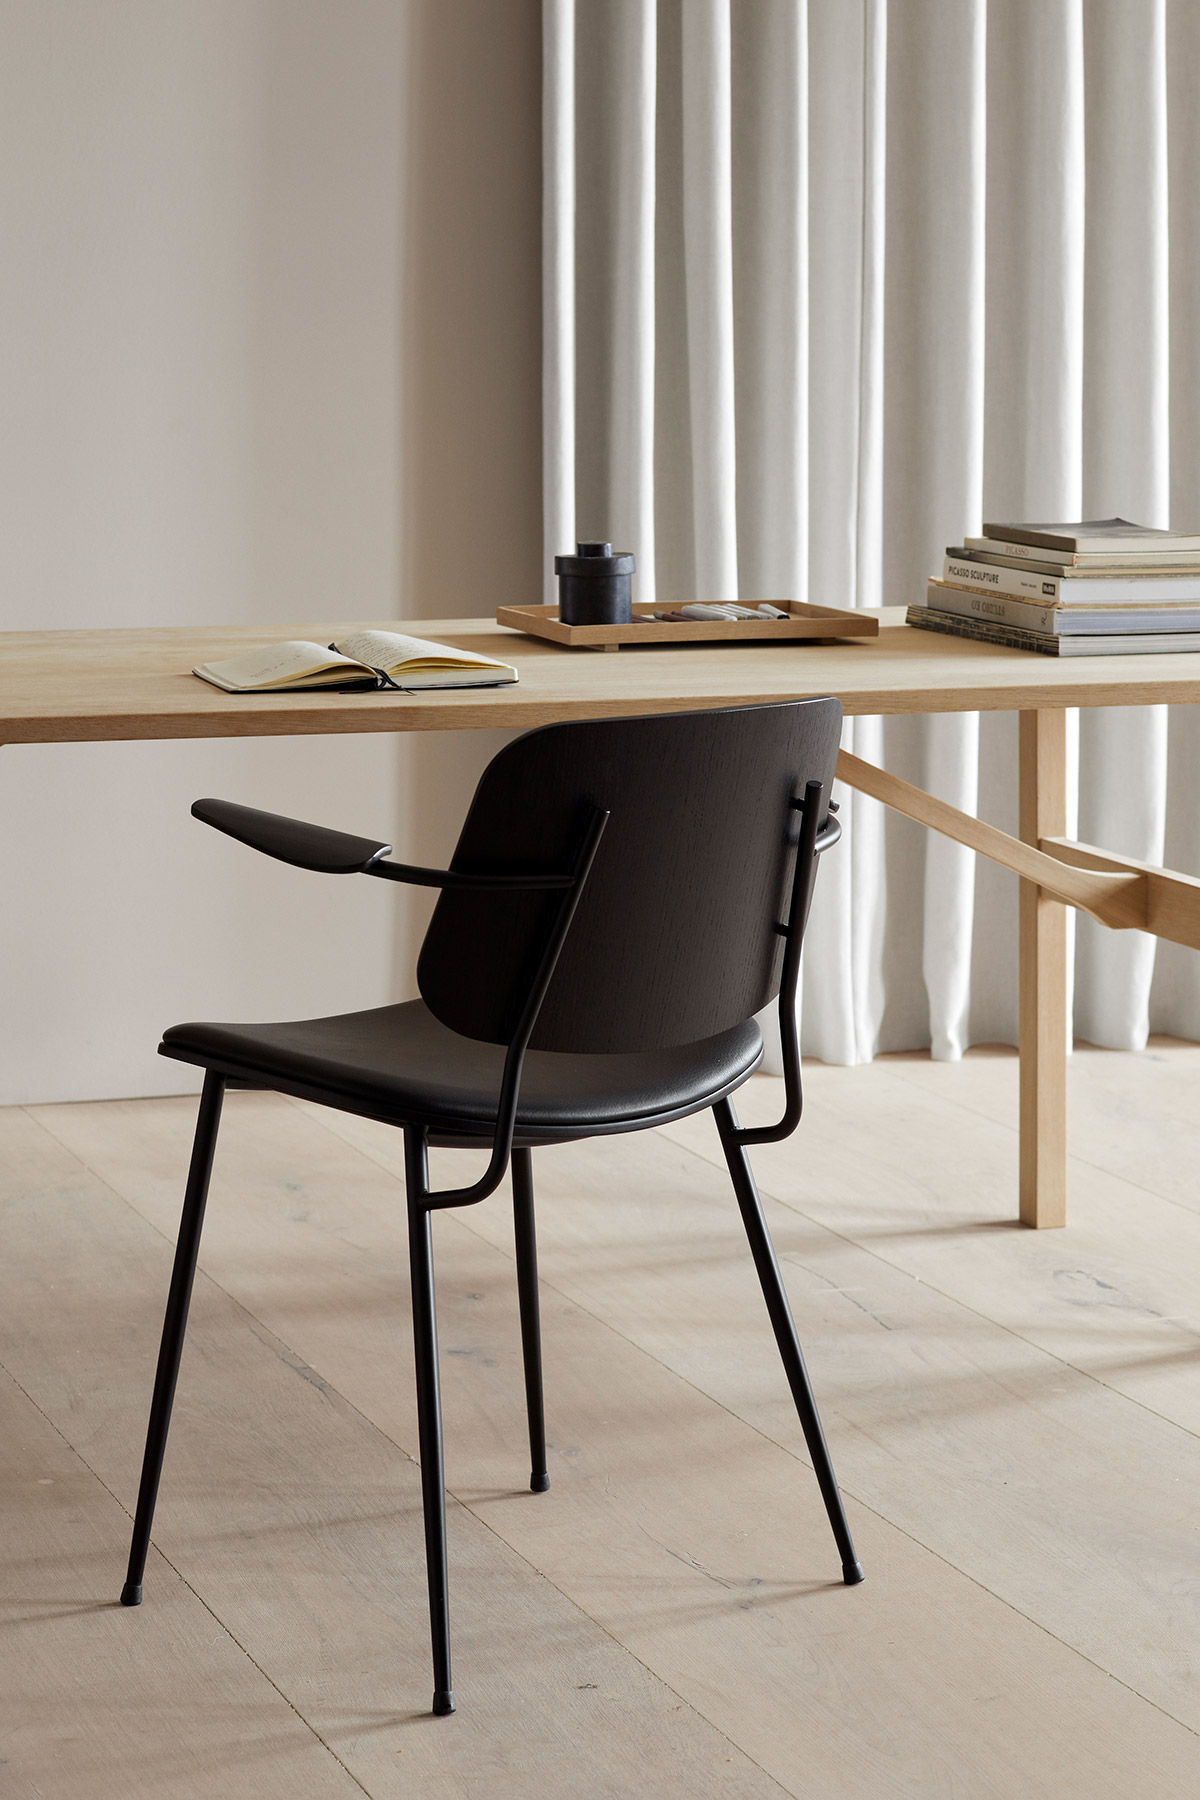 Søborg metal armchair in black, Mogensen 6284 table by Fredericia